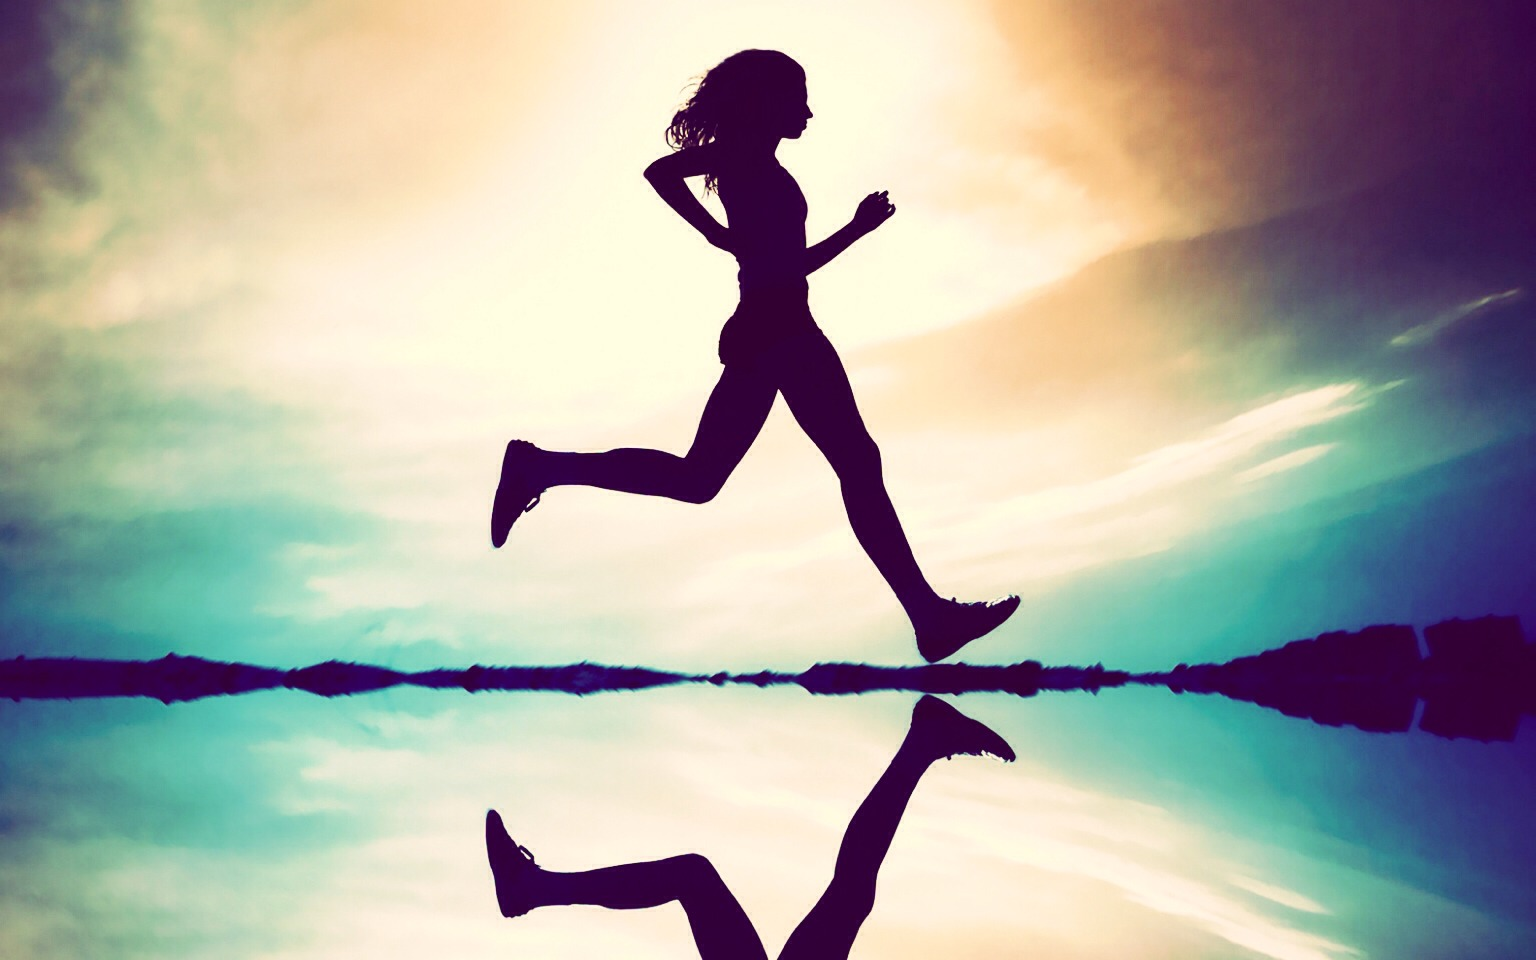 Try to consume your last meal before 6pm, after take a jog around the block in order to keep your bodies metabolism up, allowing you to burn calories while you sleep!